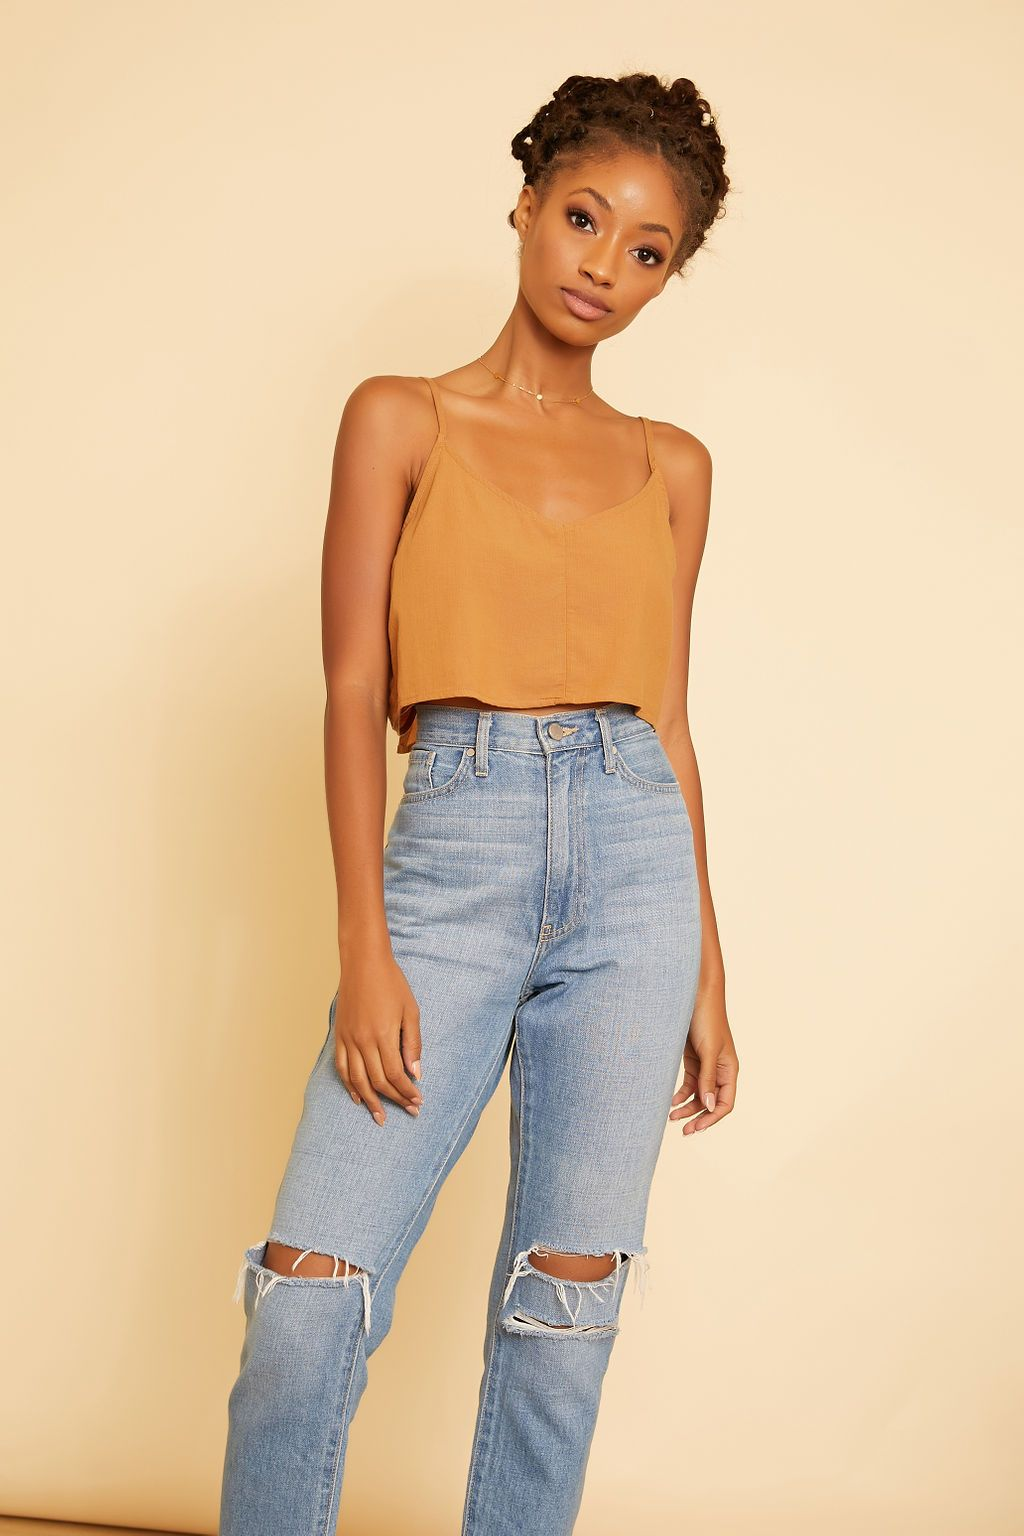 Holly Tie Back Crop Tank - wearNYLA